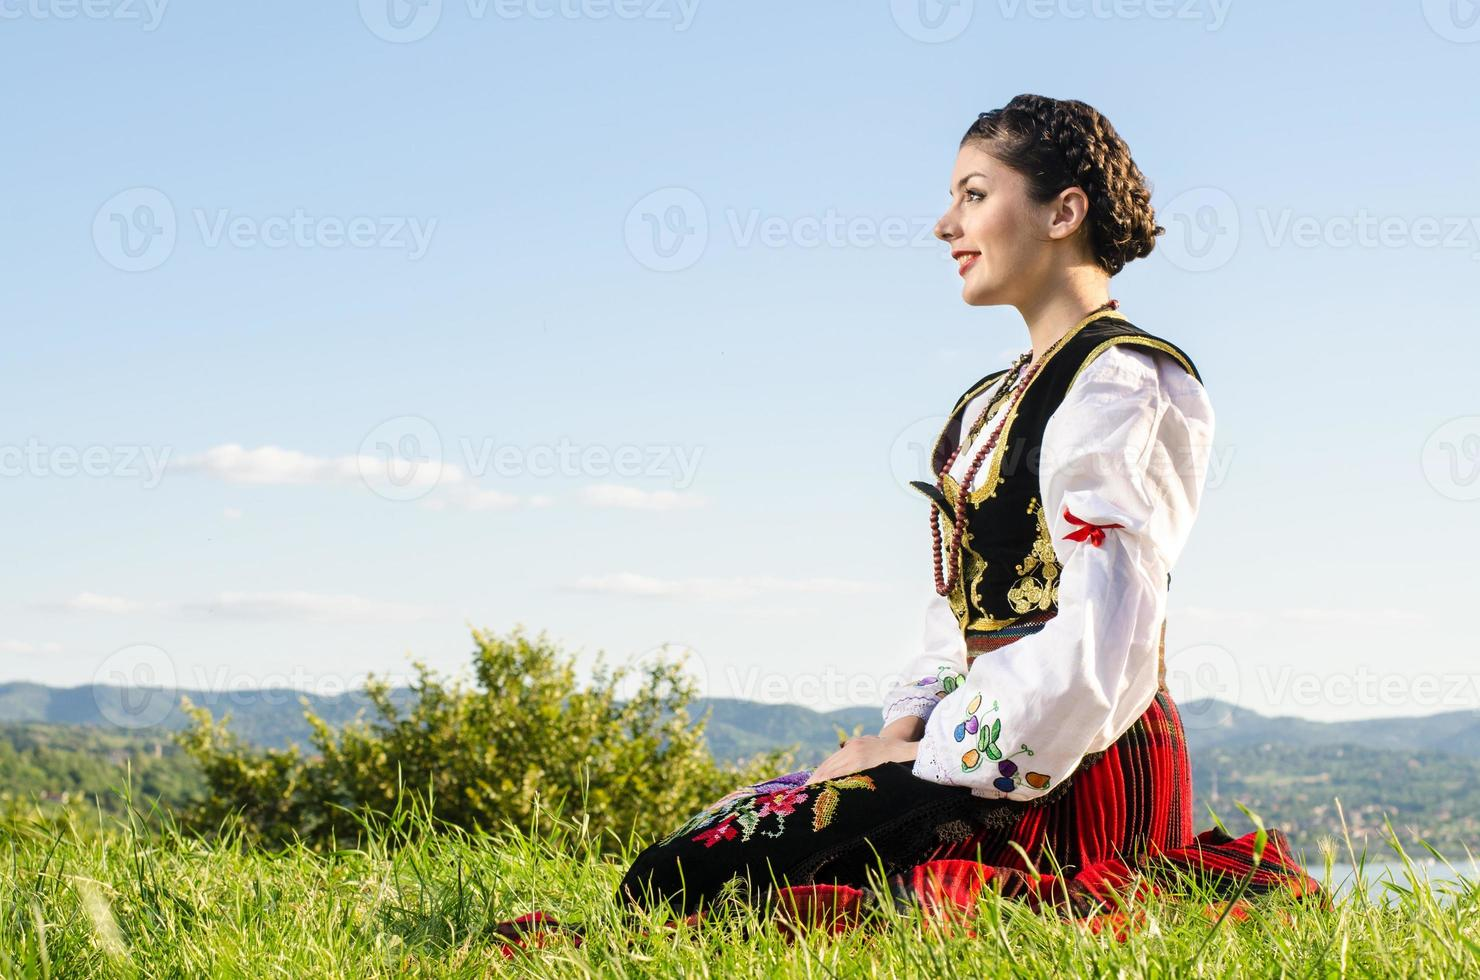 Female wearing traditional Serbian clothing photo